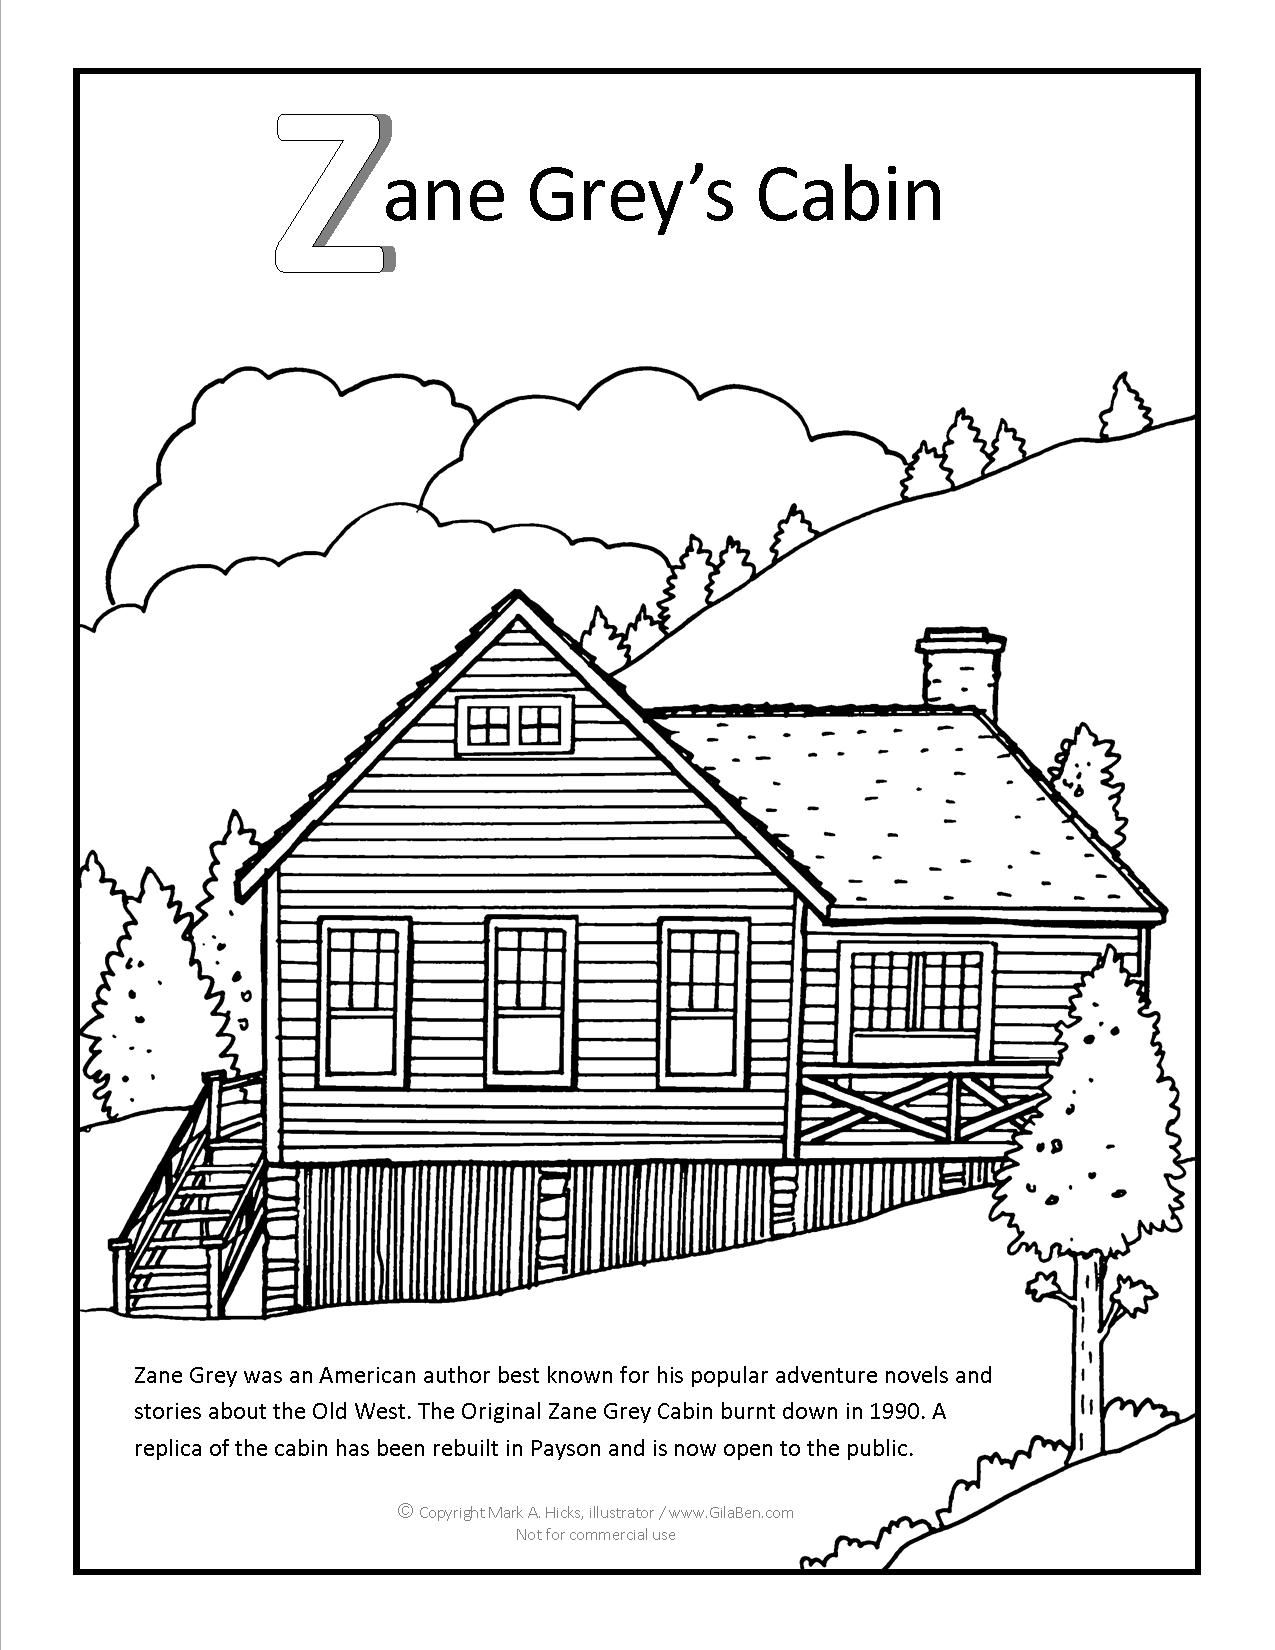 American old west gun fights coloring pages | 1650x1275